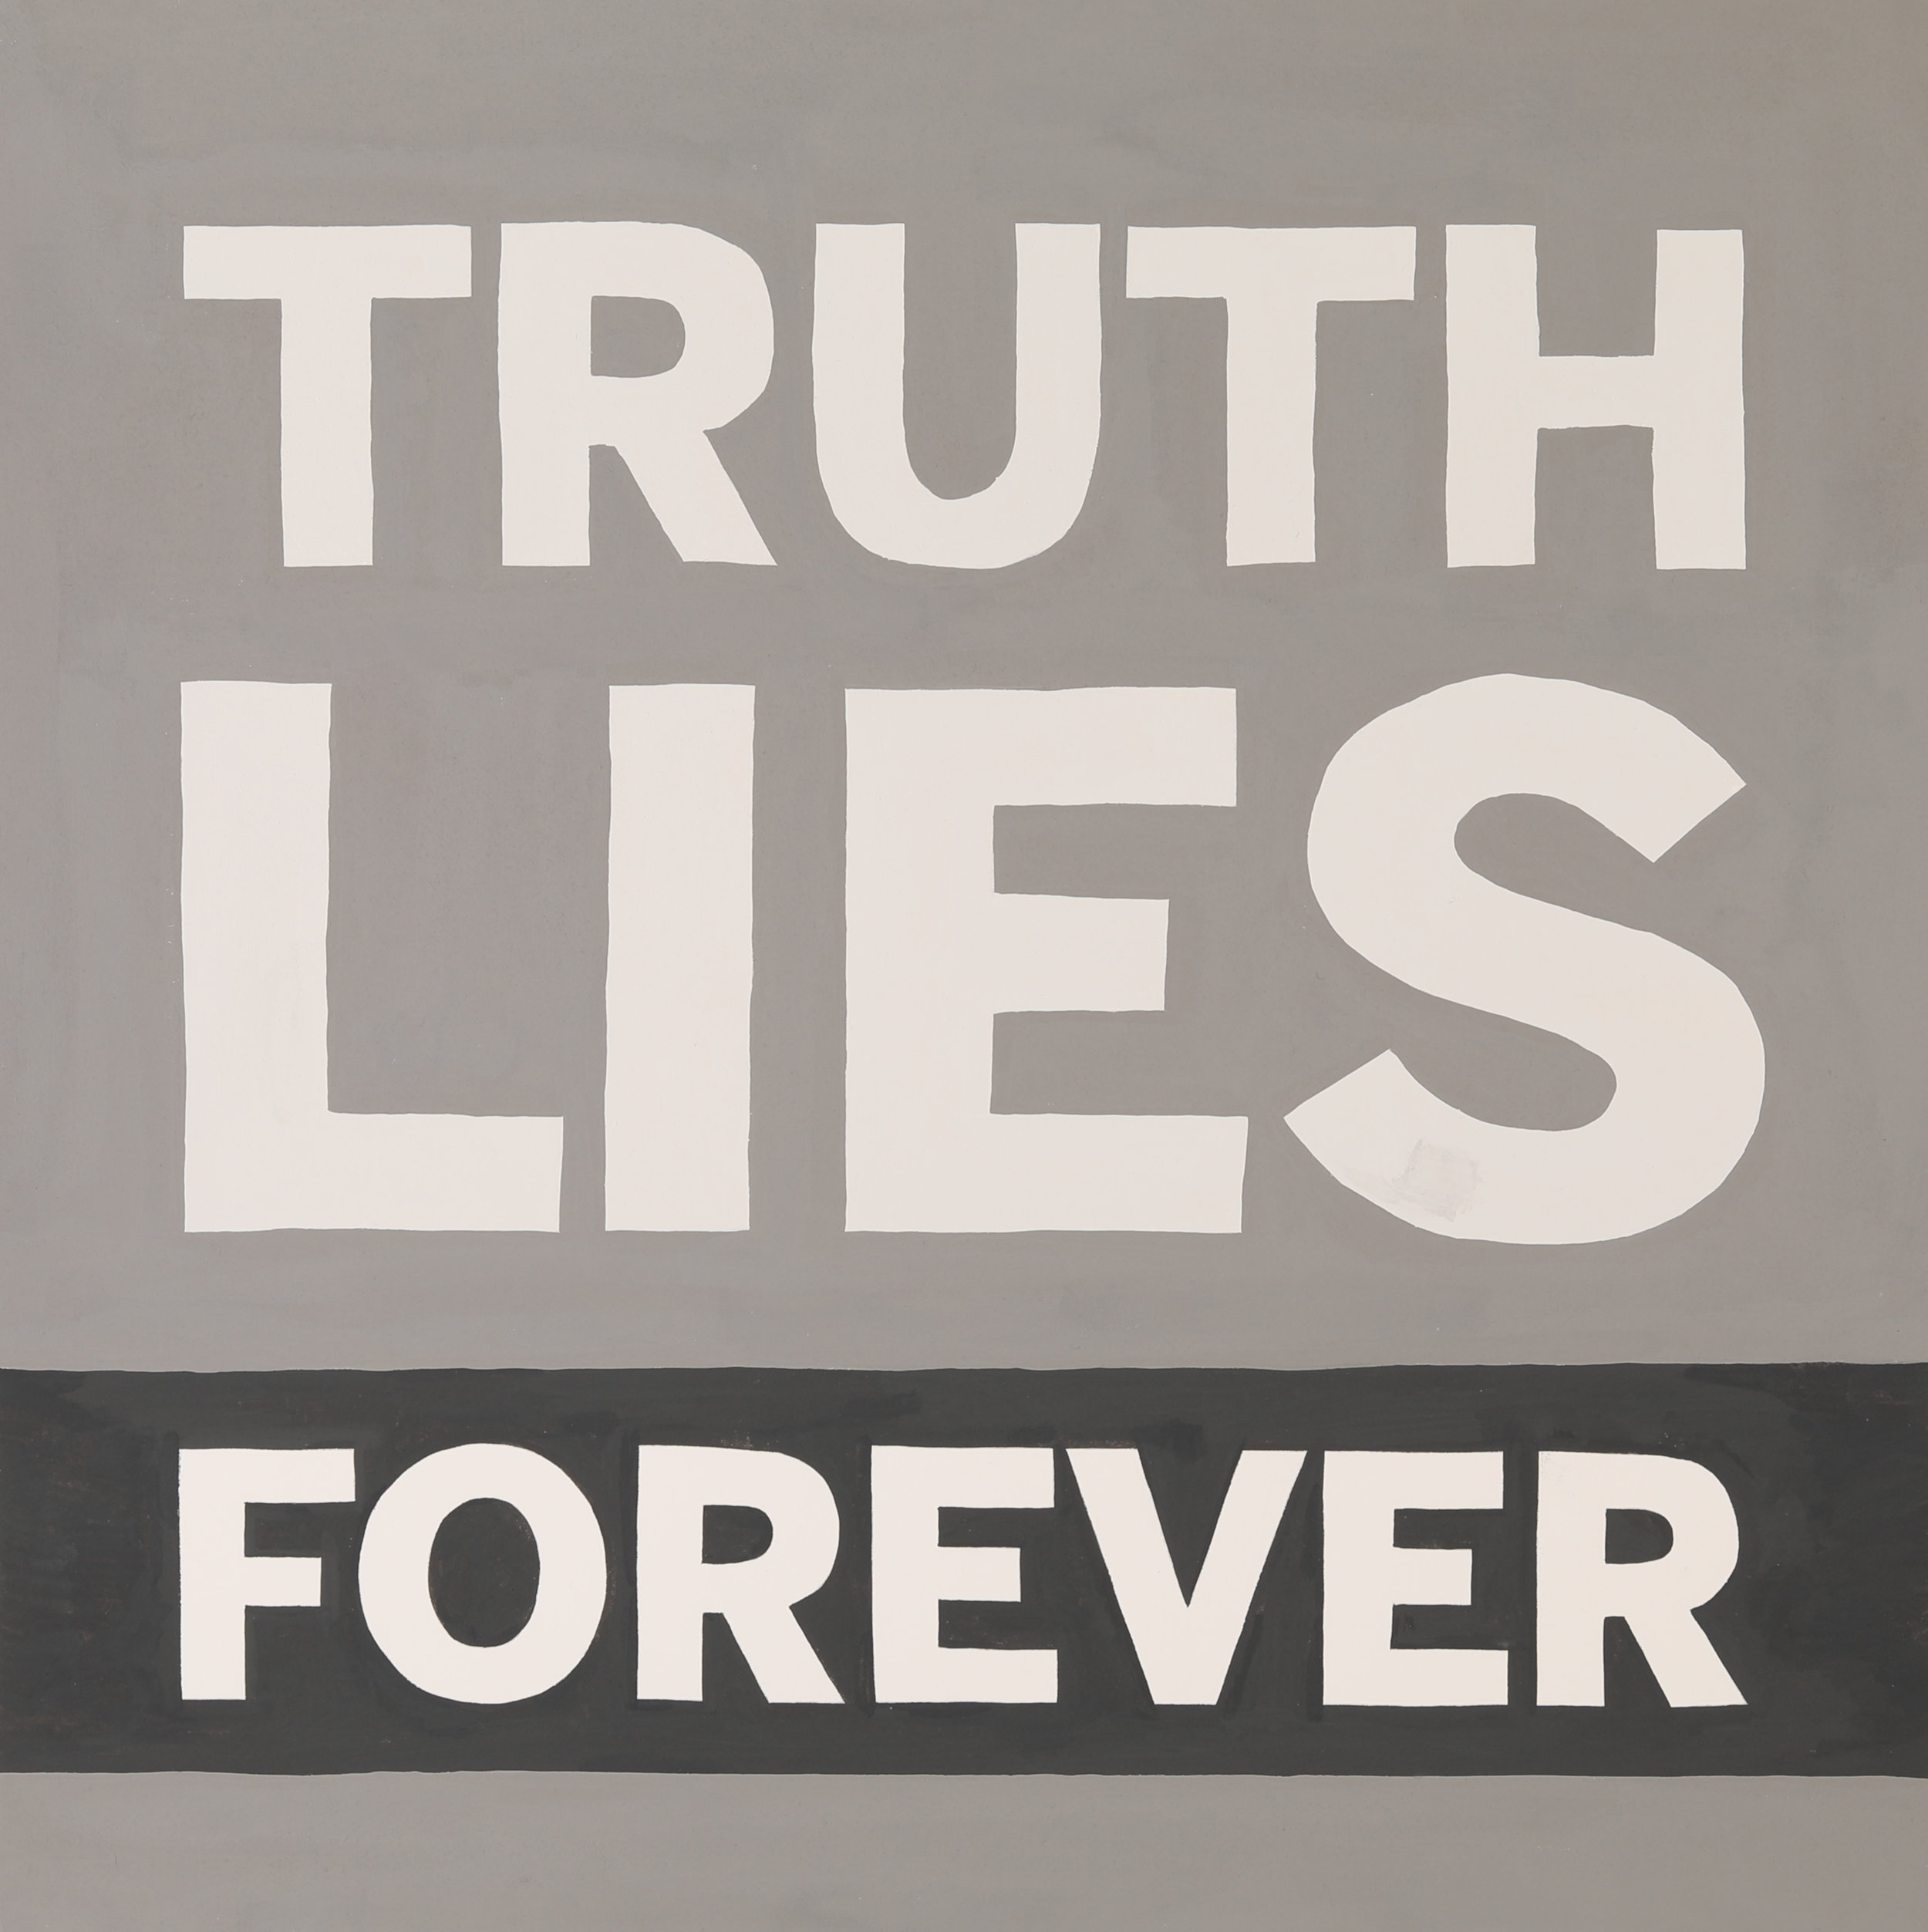 TRUTH LIES FOREVER, 2013